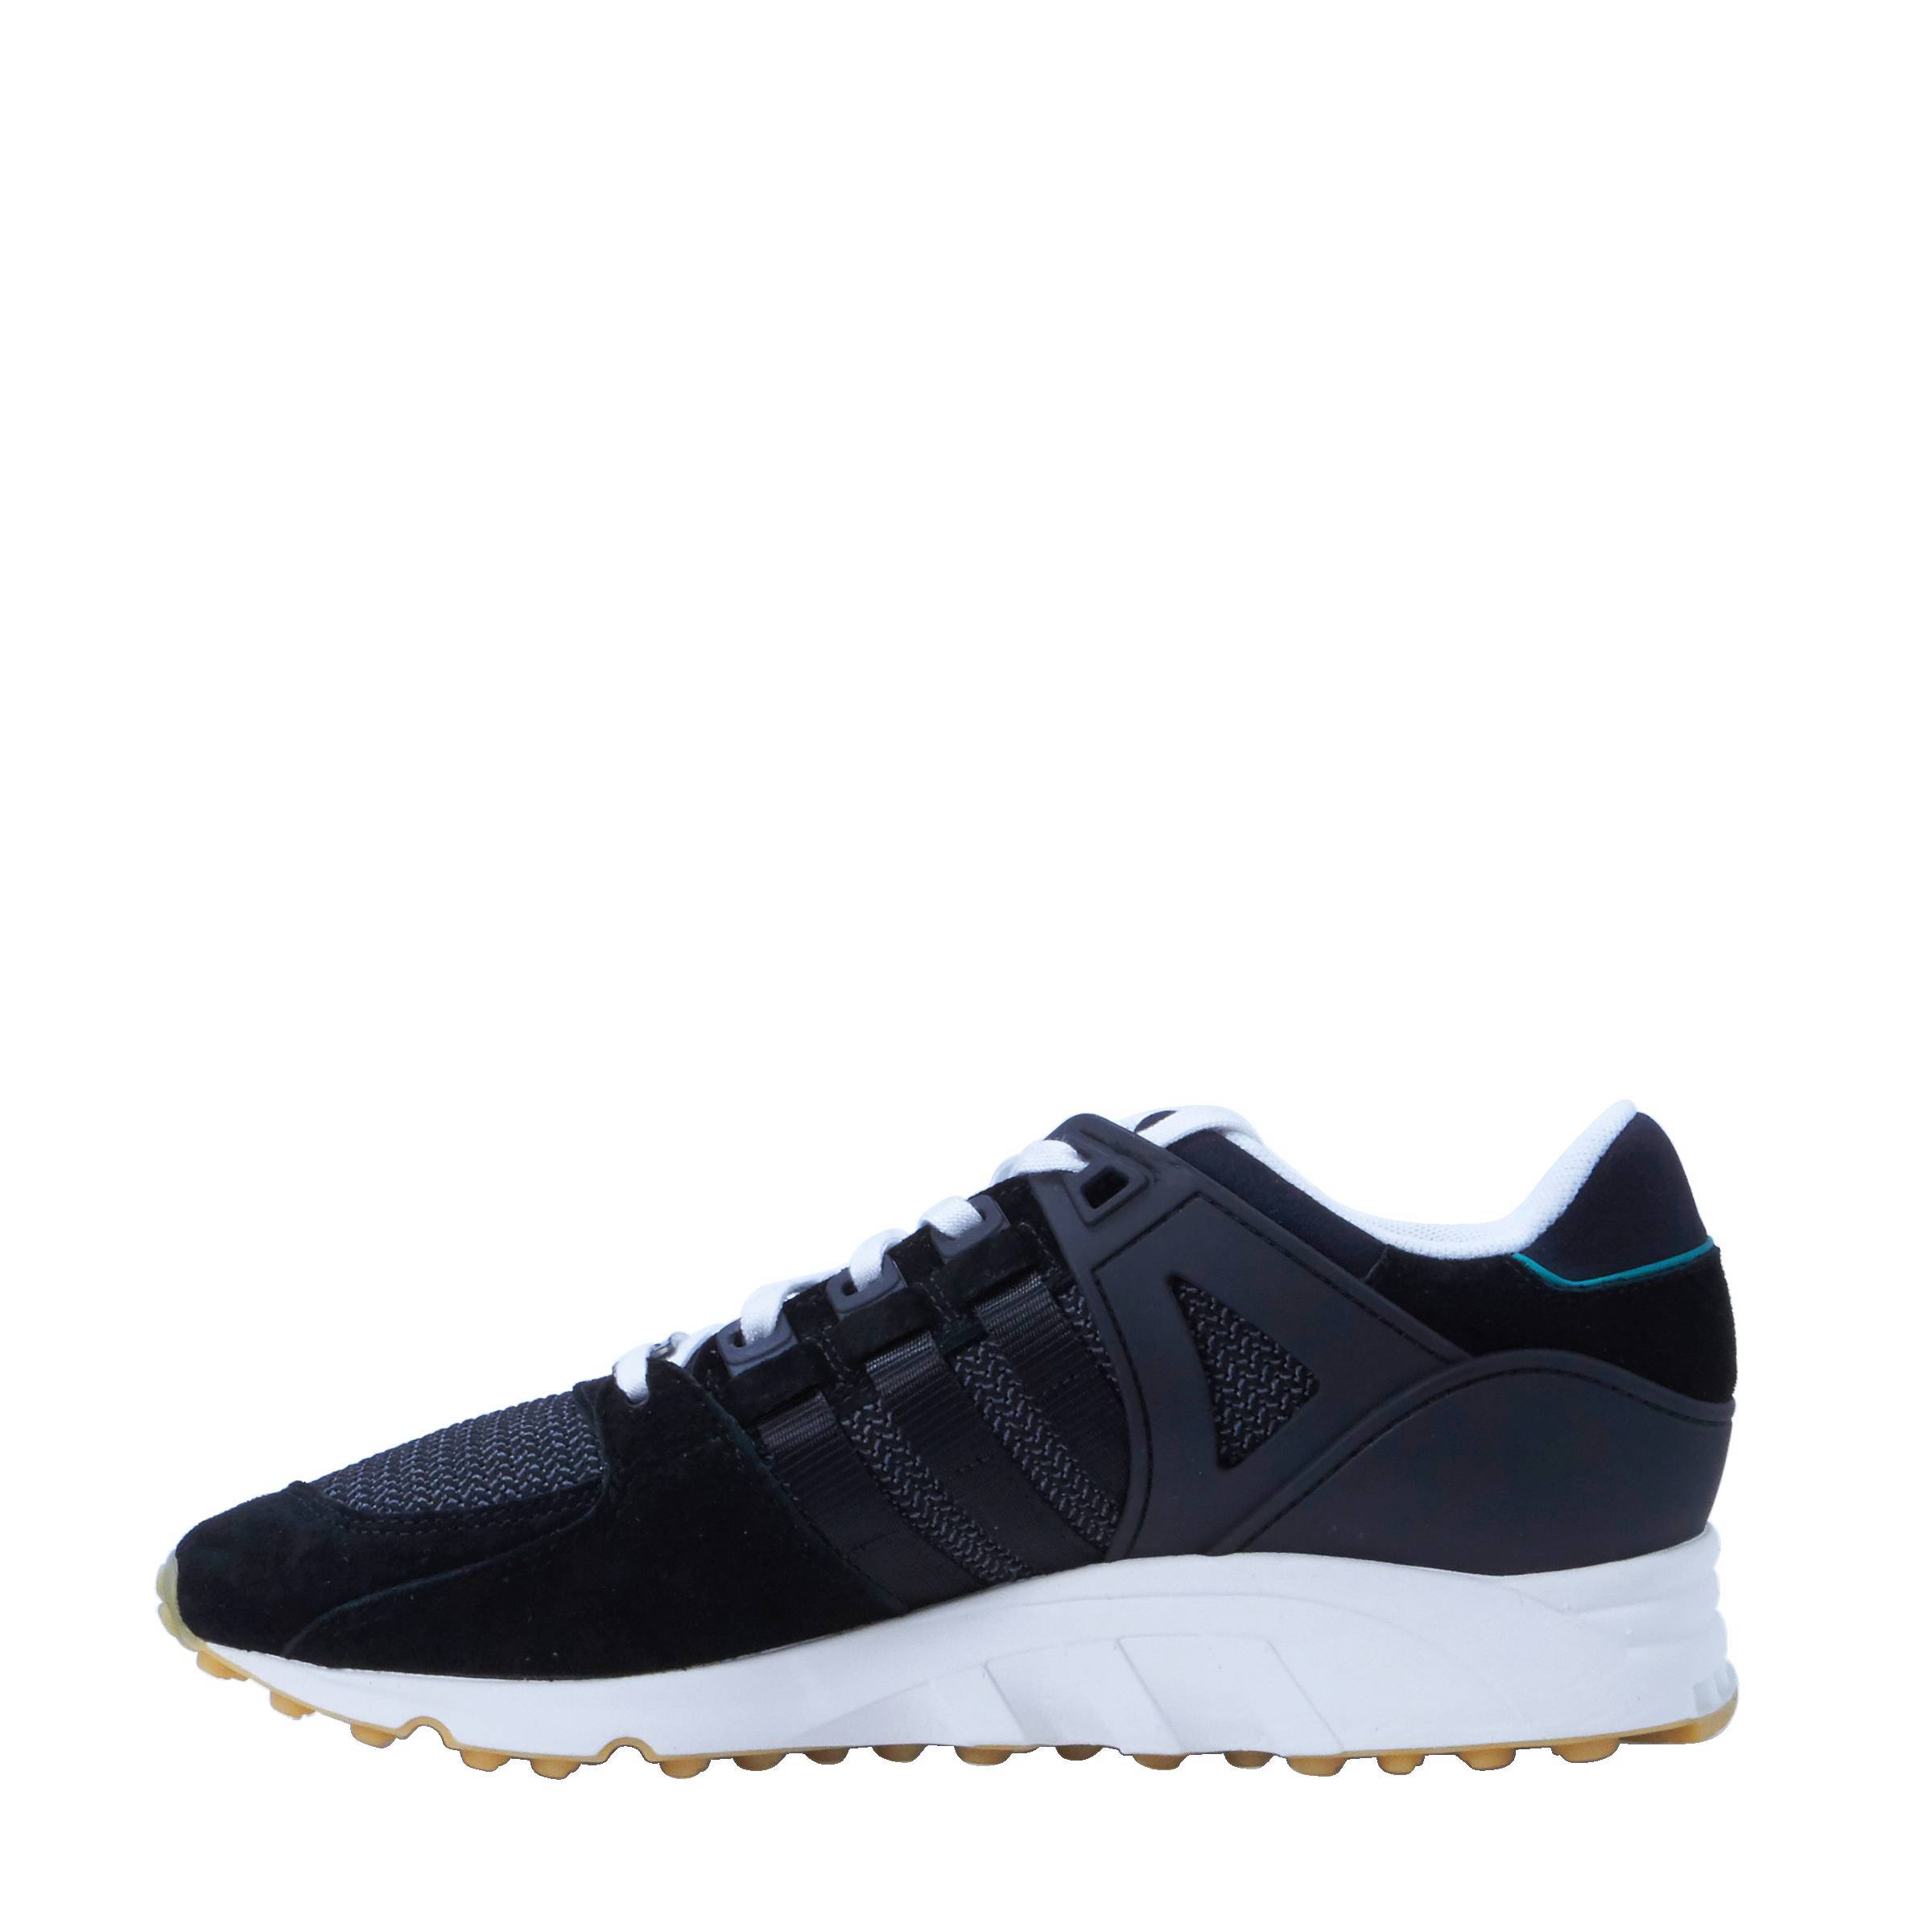 buy online 20b4b 2031a adidas originals EQT Support RF W sneakers  wehkamp